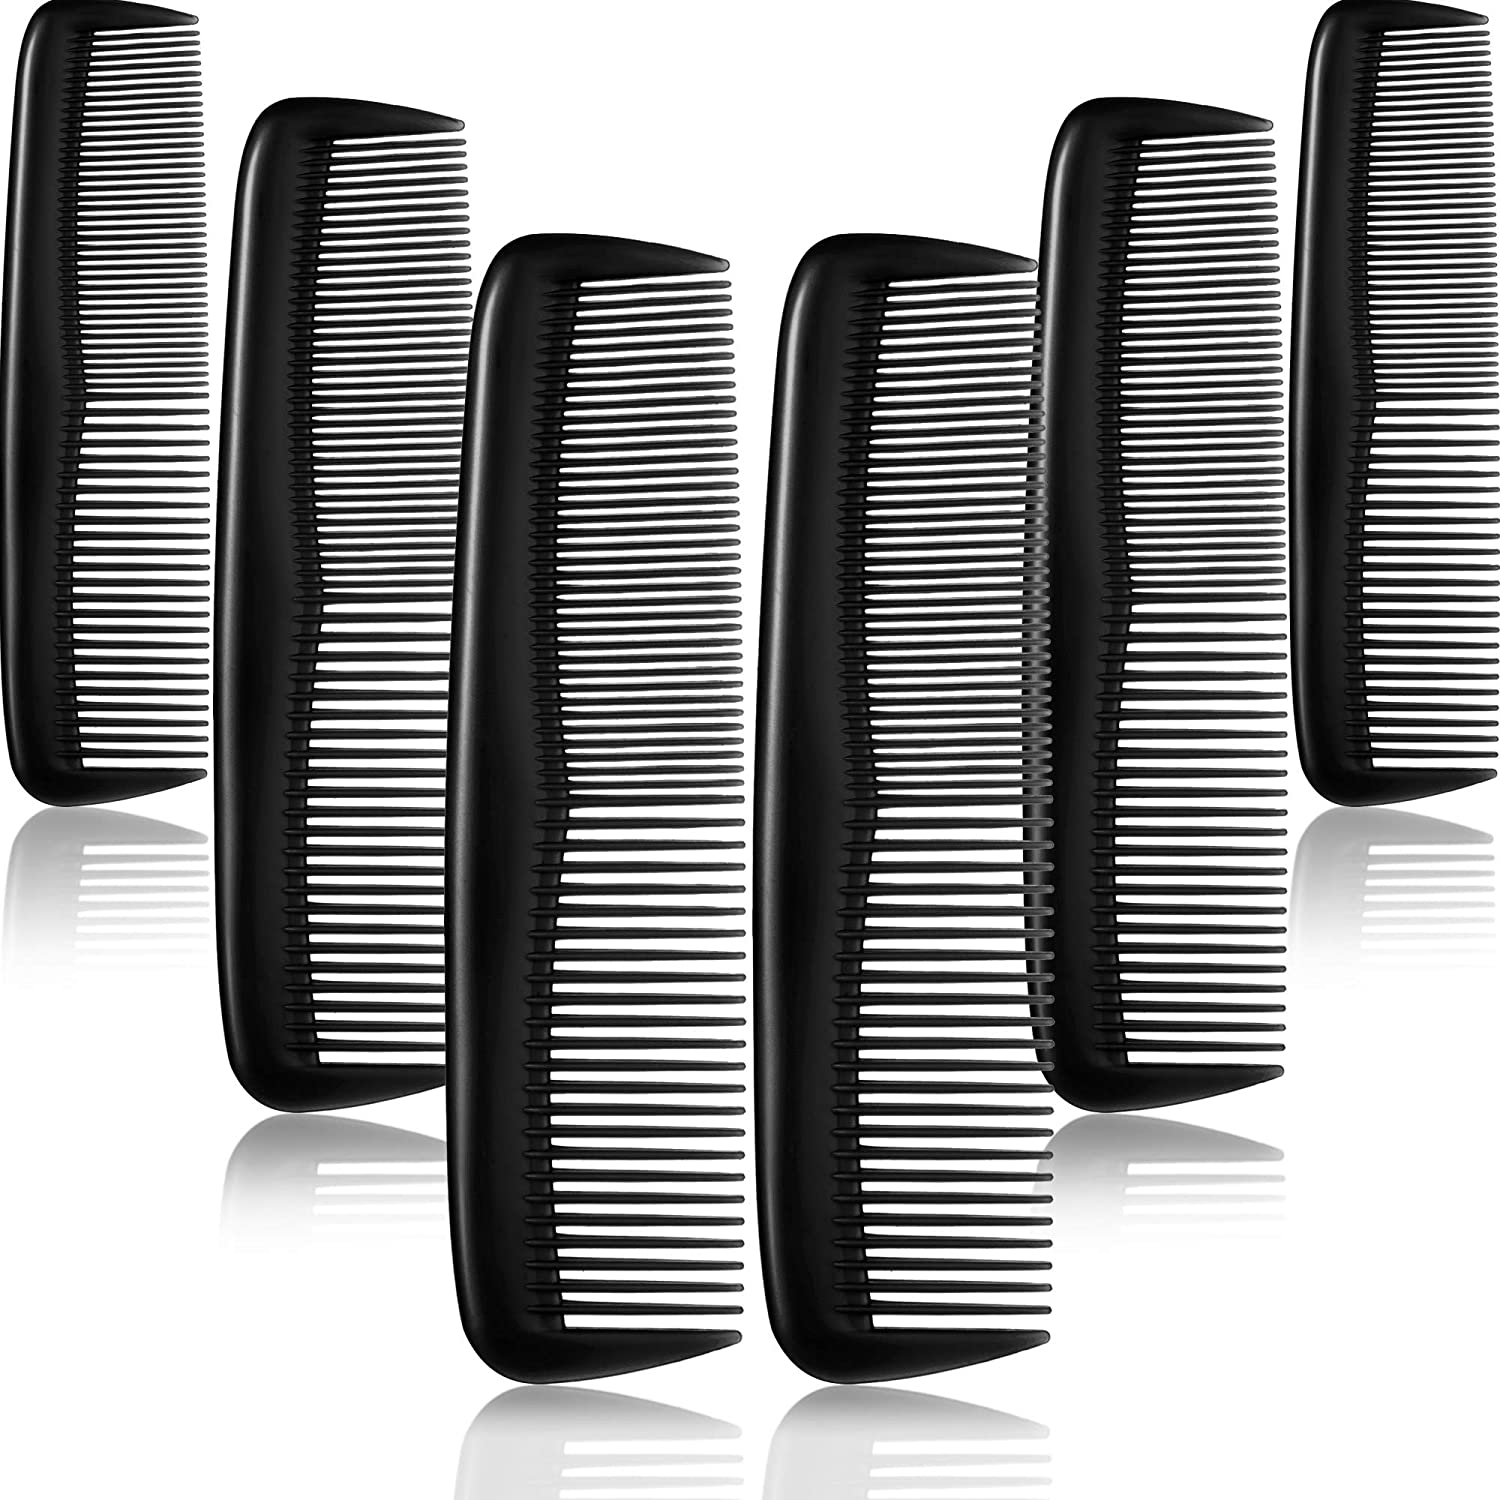 12 Pieces Hair Combs Set Pocket Fine Plastic Hair Combs for Women and Men, Fine Dressing Comb (Black)